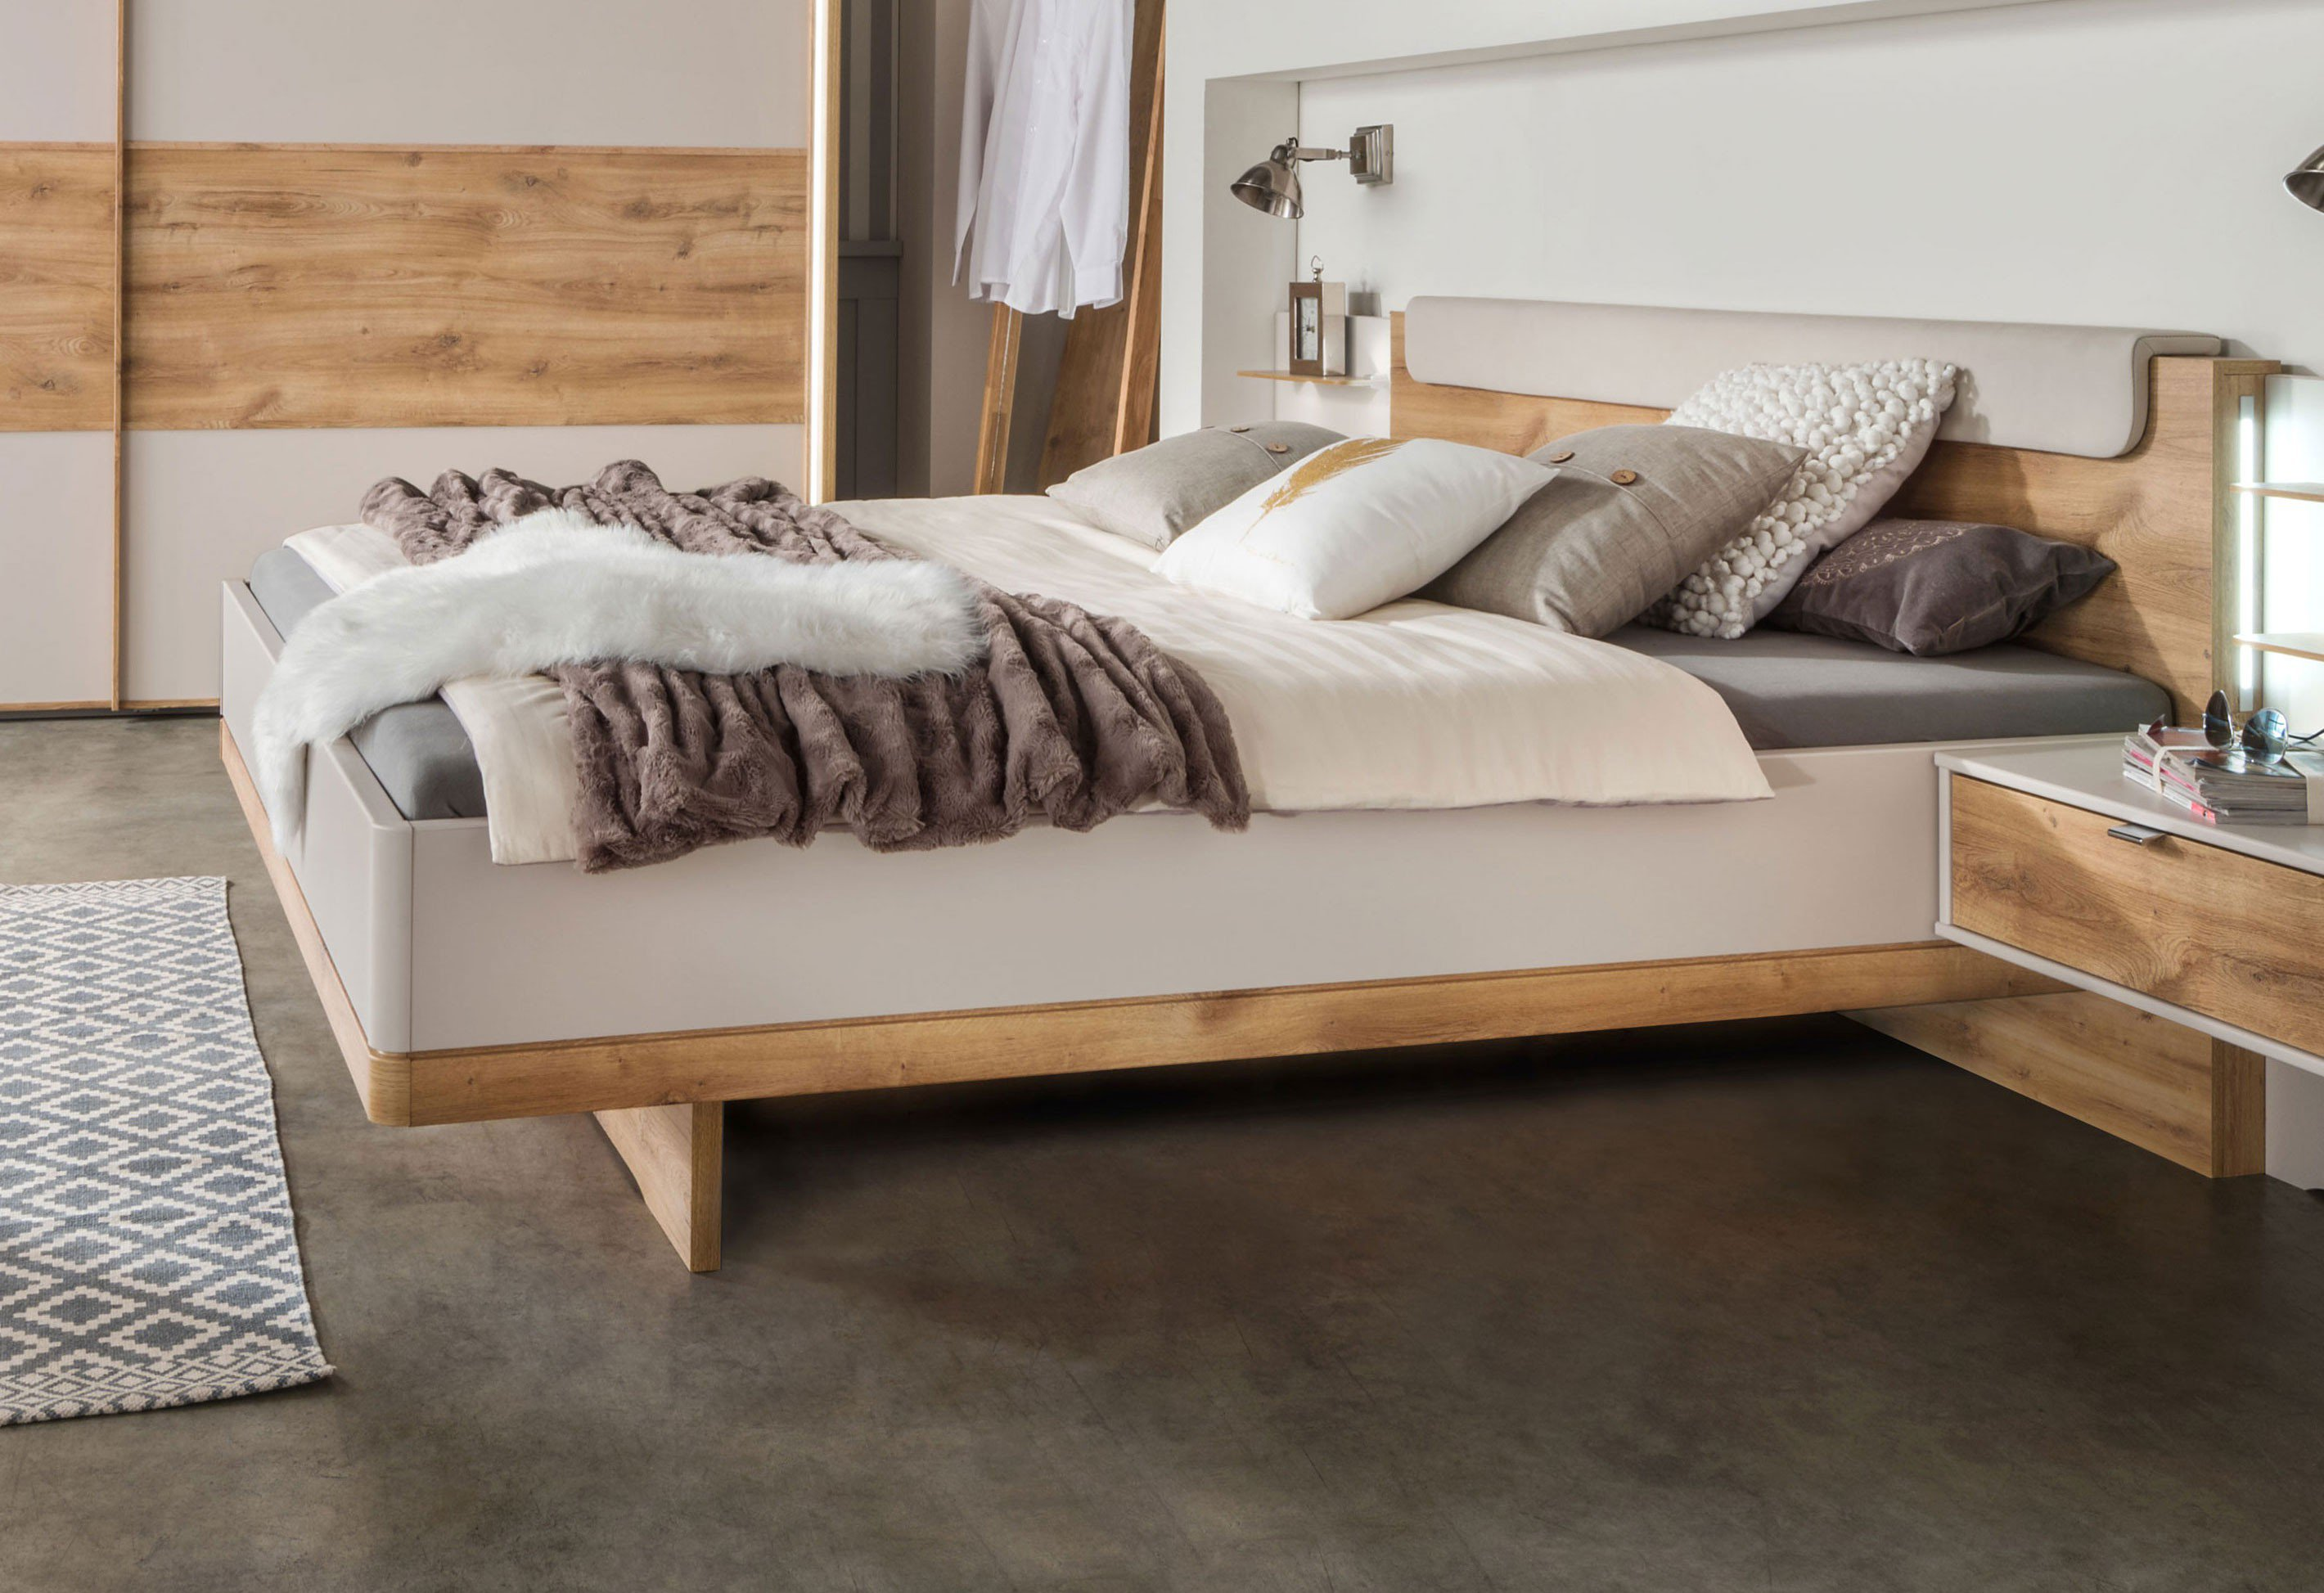 bett 90 x 200 perfect genial bett x kiefer massiv img schubkasten einzelbett anna stauraum. Black Bedroom Furniture Sets. Home Design Ideas